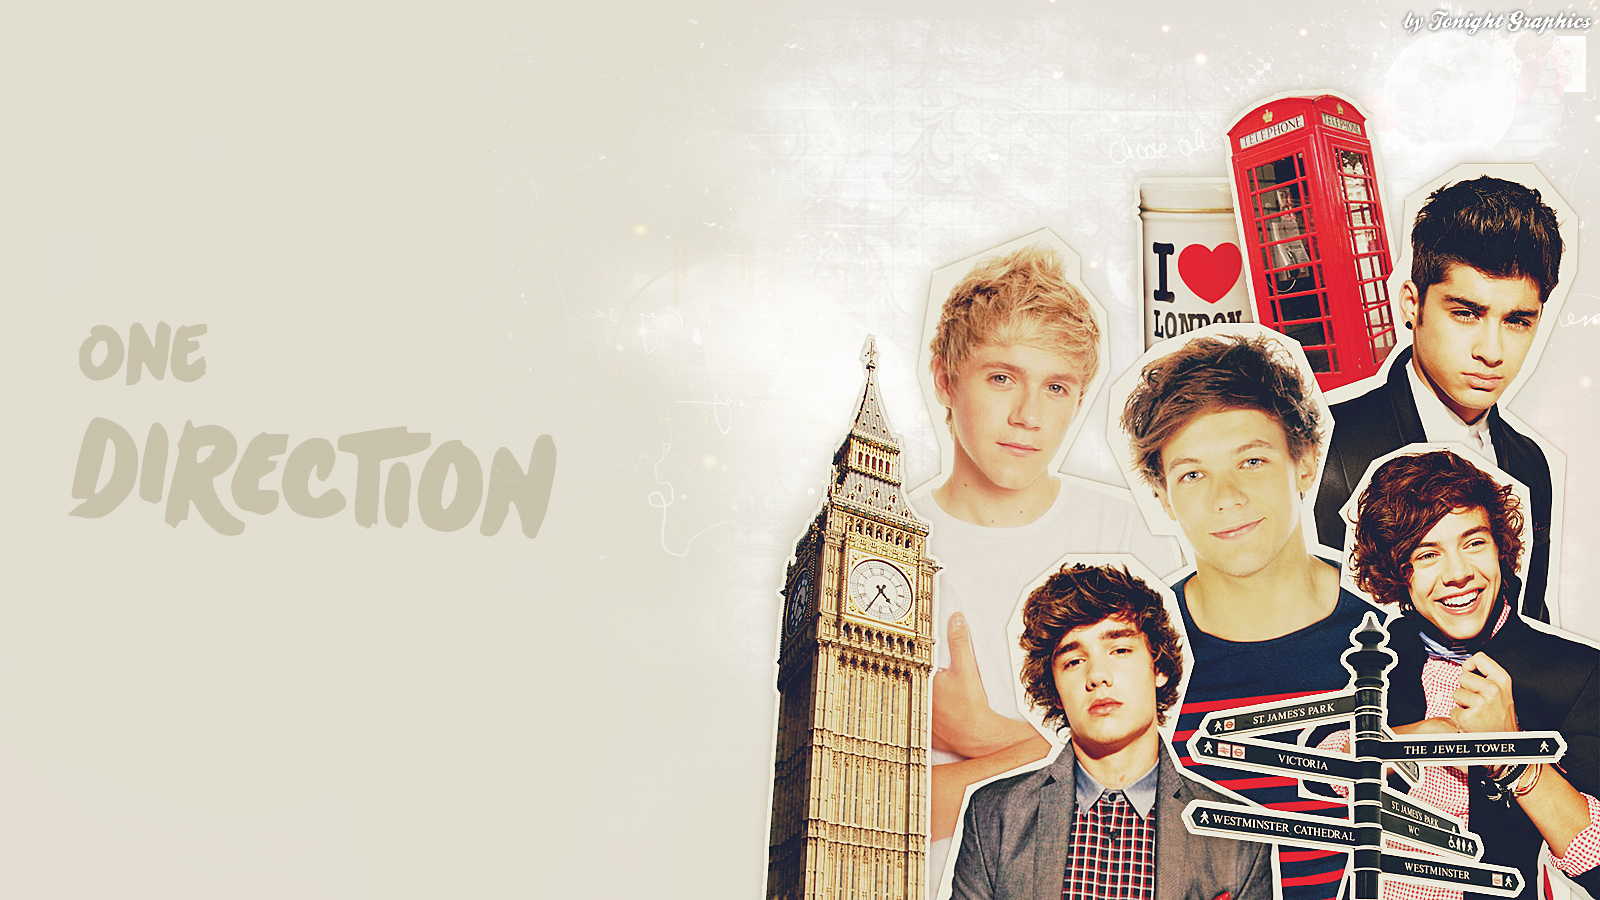 one direction one direction as puppies related one direction wallpaper 1600x900